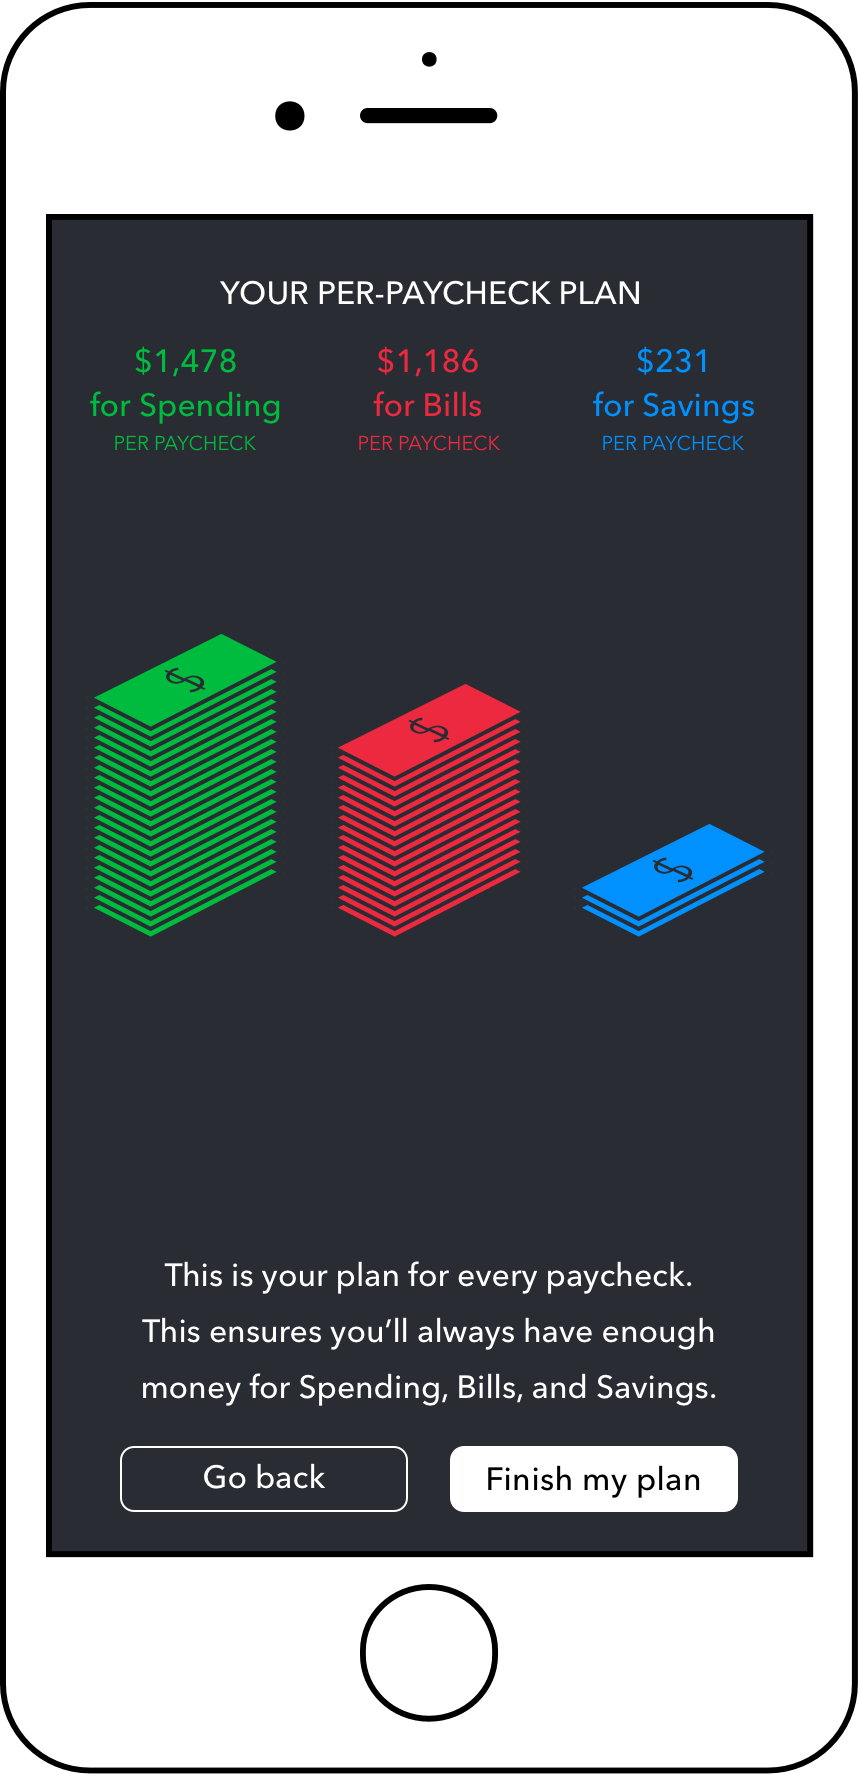 …and that's your Paycheck Plan - Every payday, we visually organize your paycheck according to your custom plan. The result is: you always have money earmarked for Bills, Savings, and Spending.